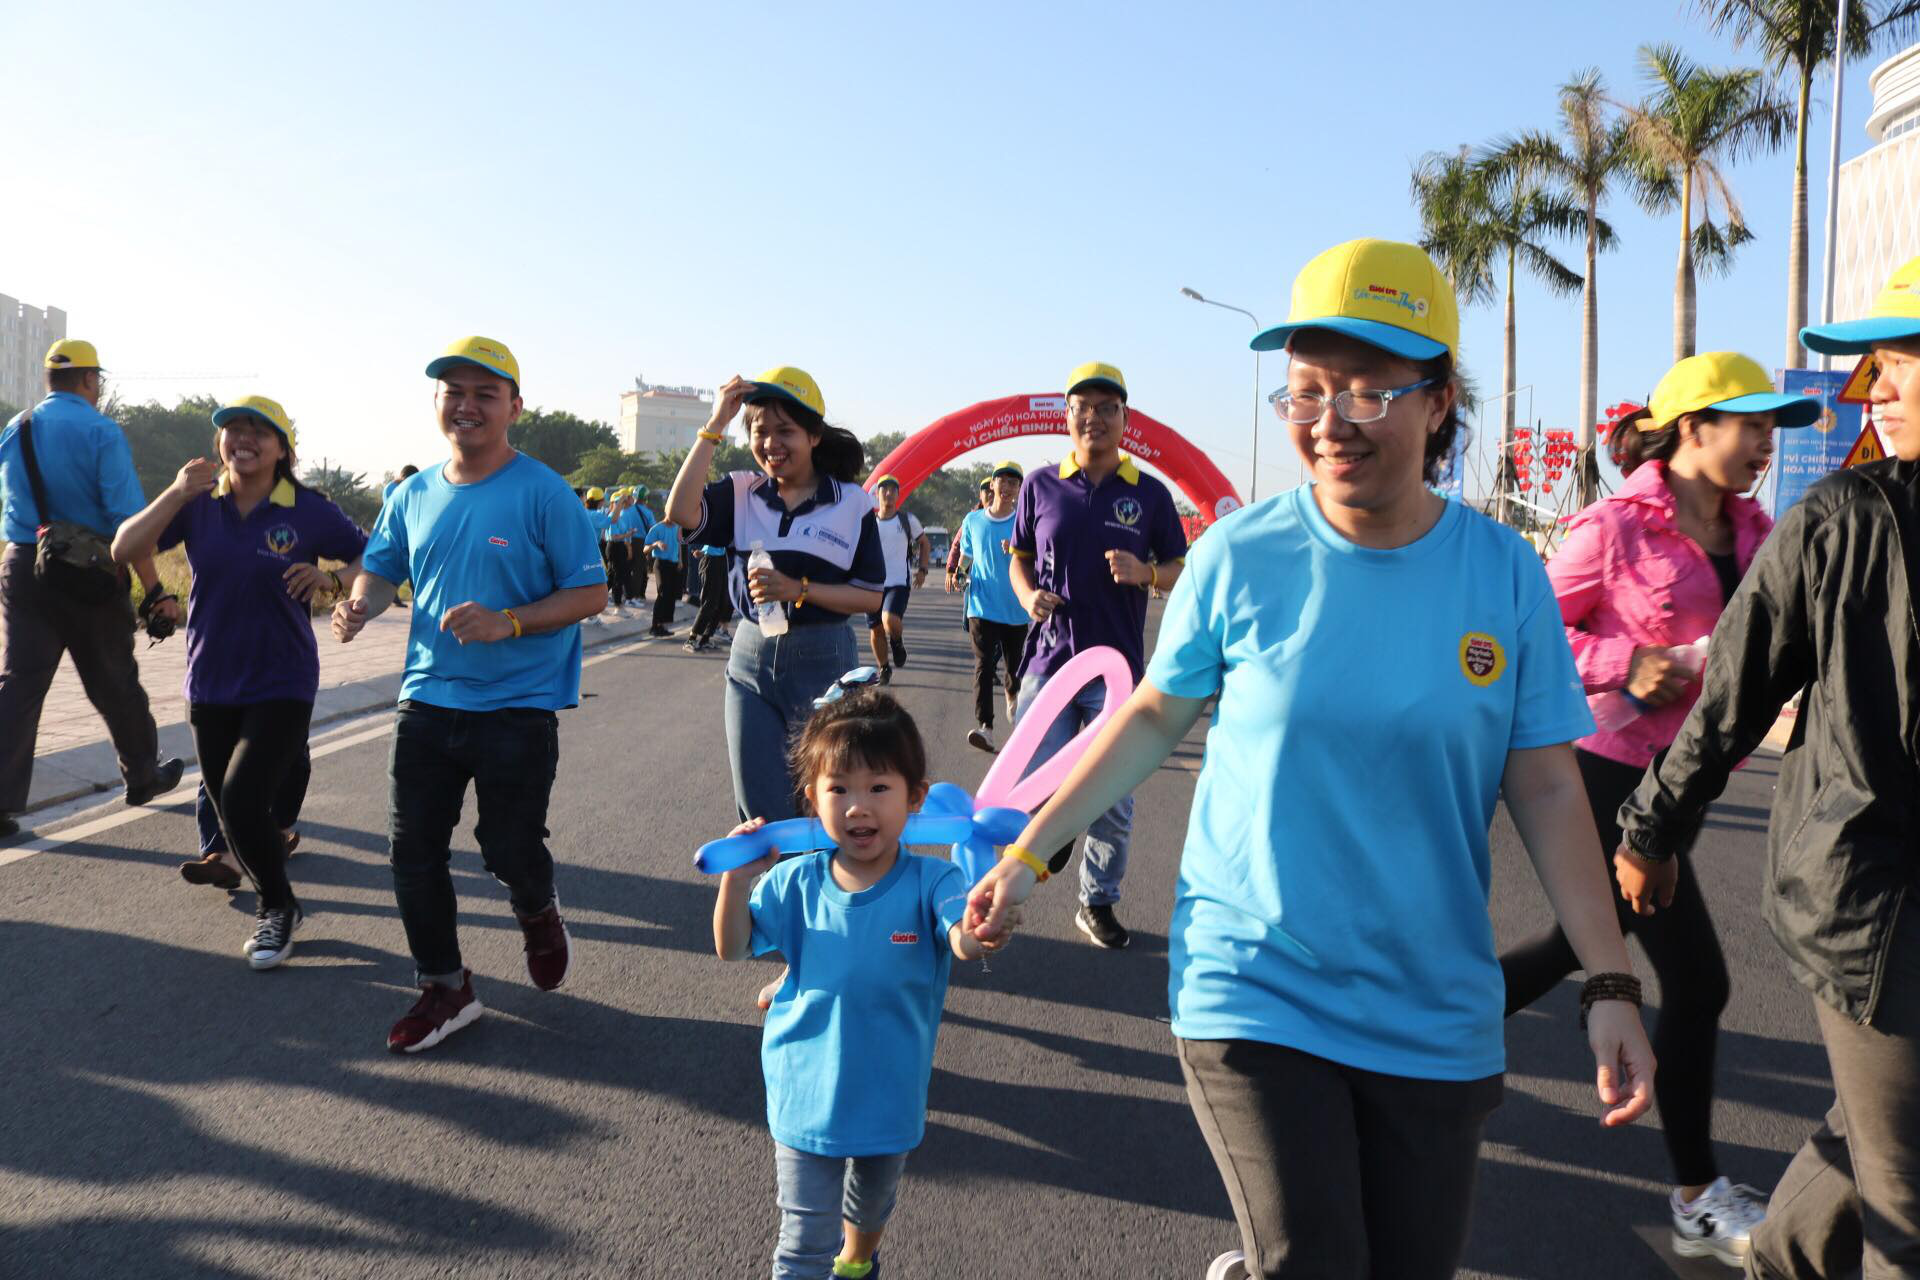 People of all ages take part in the run. Photo: Hoang An / Tuoi Tre